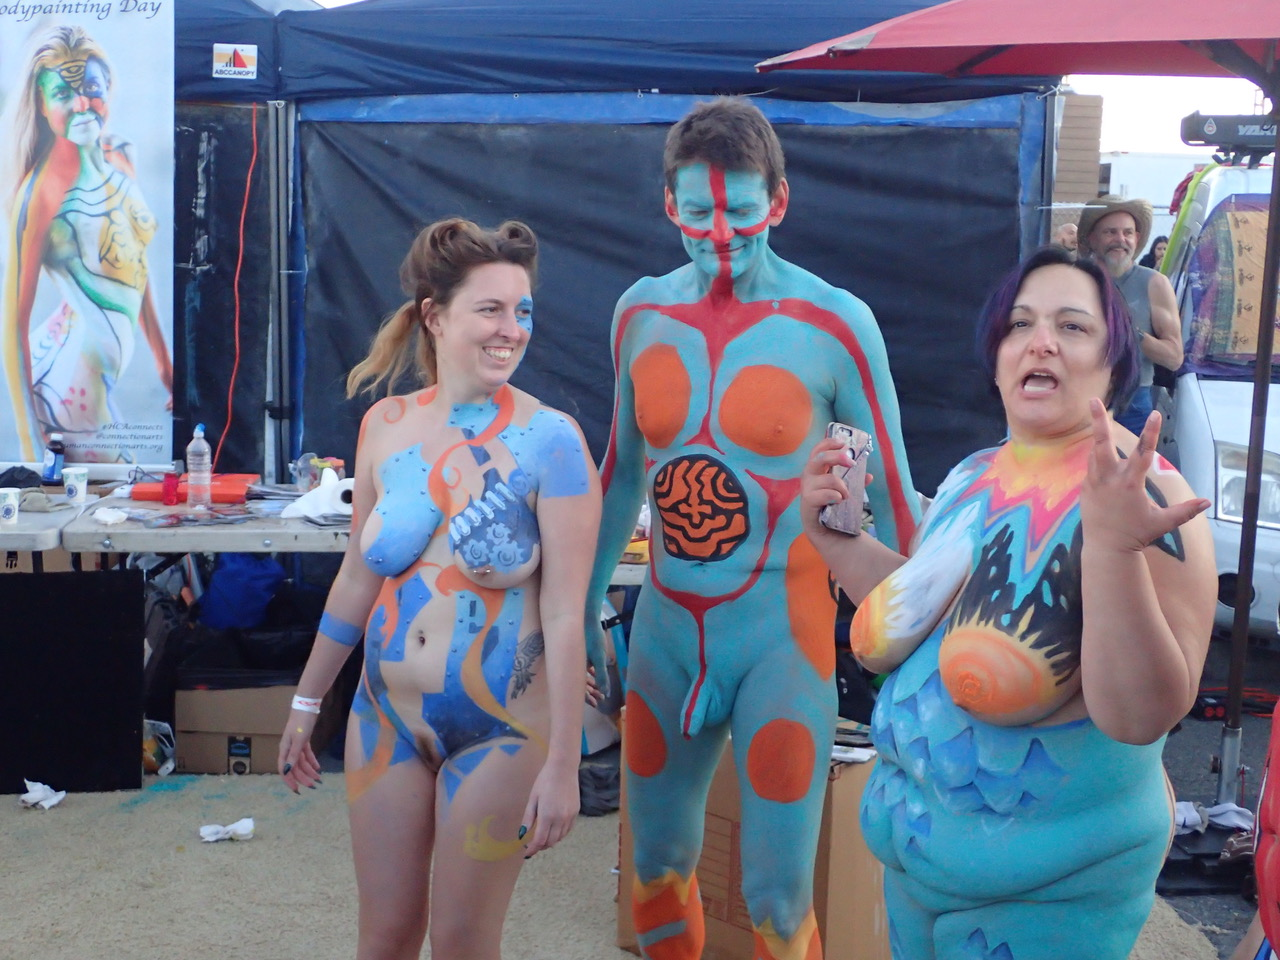 The Artists of Amsterdam Bodypainting Day 2015